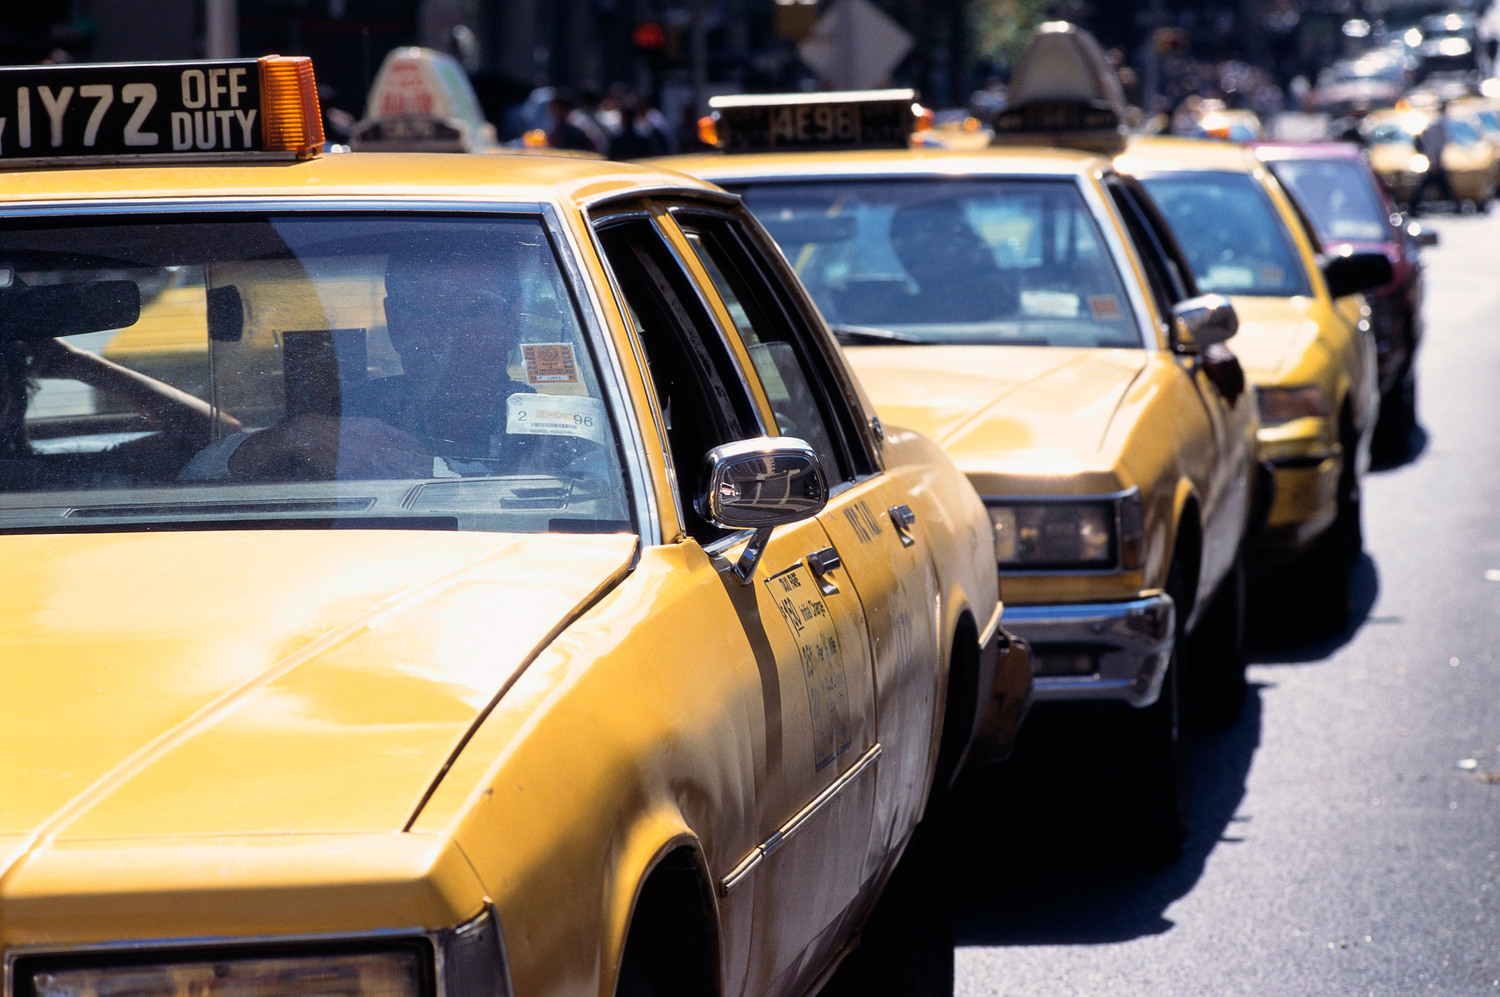 Taxis move through a traffic lane in New York City, 1995